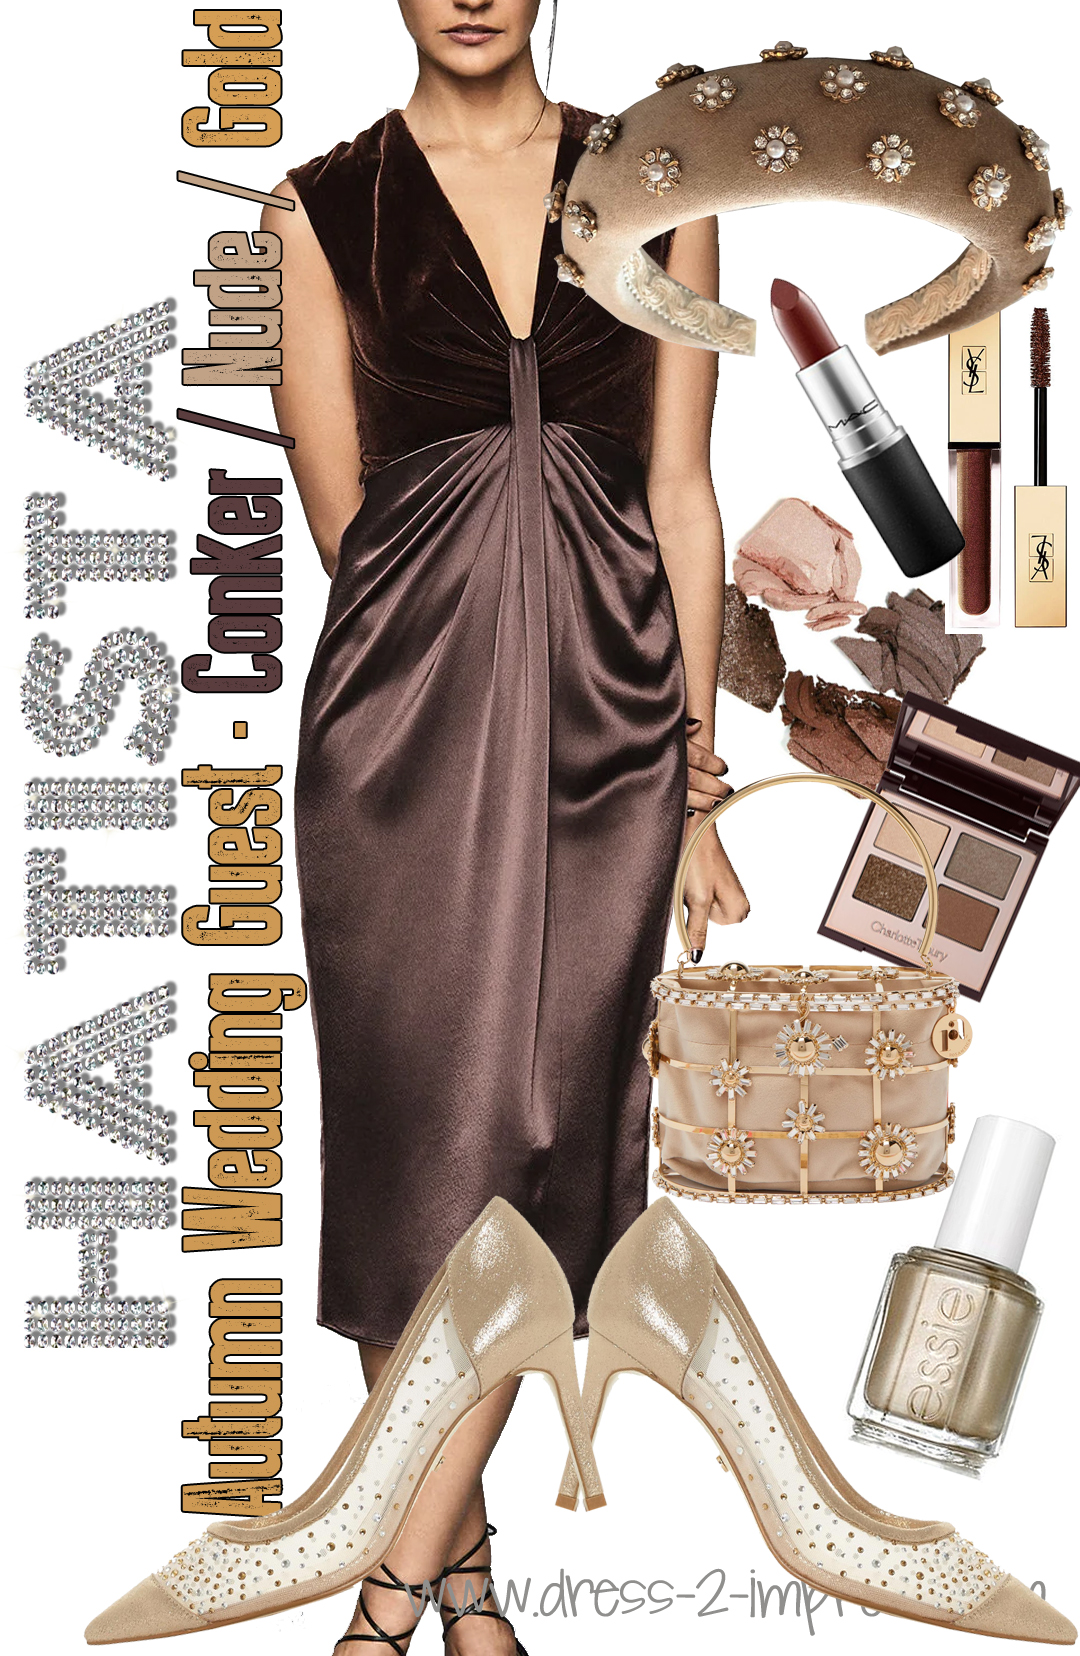 How to dress for a Fall wedding. Autumn Wedding Guest Outfits Ideas 2020. What to wear for an Autumn Wedding 2020. Fall wedding outfit ideas 2020. Wedding Guest outfits for a Fall wedding 2020. Chocolate Brown Autumn outfits. What to wear with a Brown Dress 2020. What to wear with Gold 2020. Chocolate Brown and Gold outfit ideas 2020.